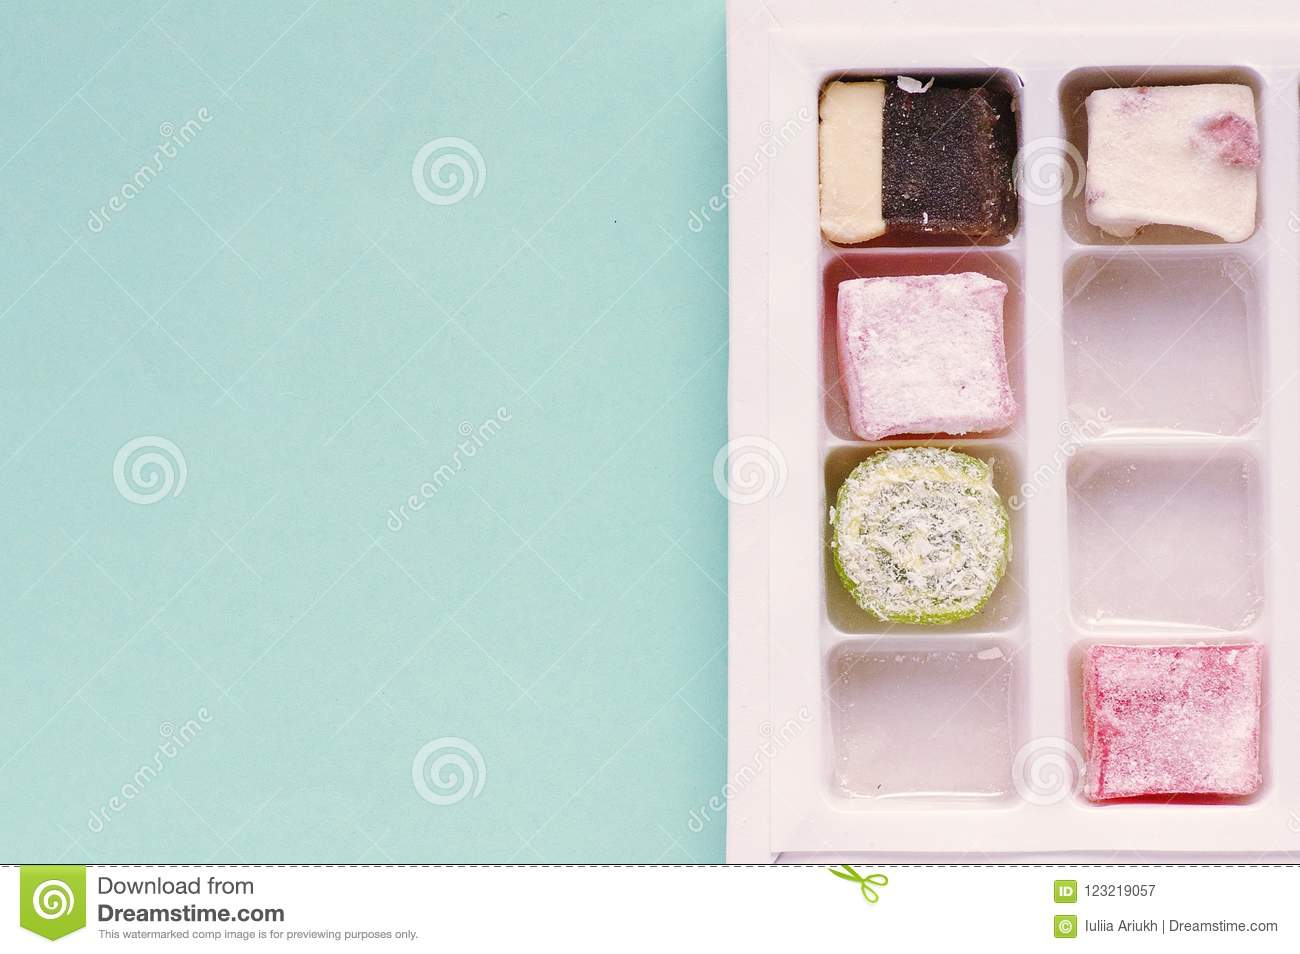 Traditional turkish delight on blue background. Arabic traditional dessert rahat lukum in a box.